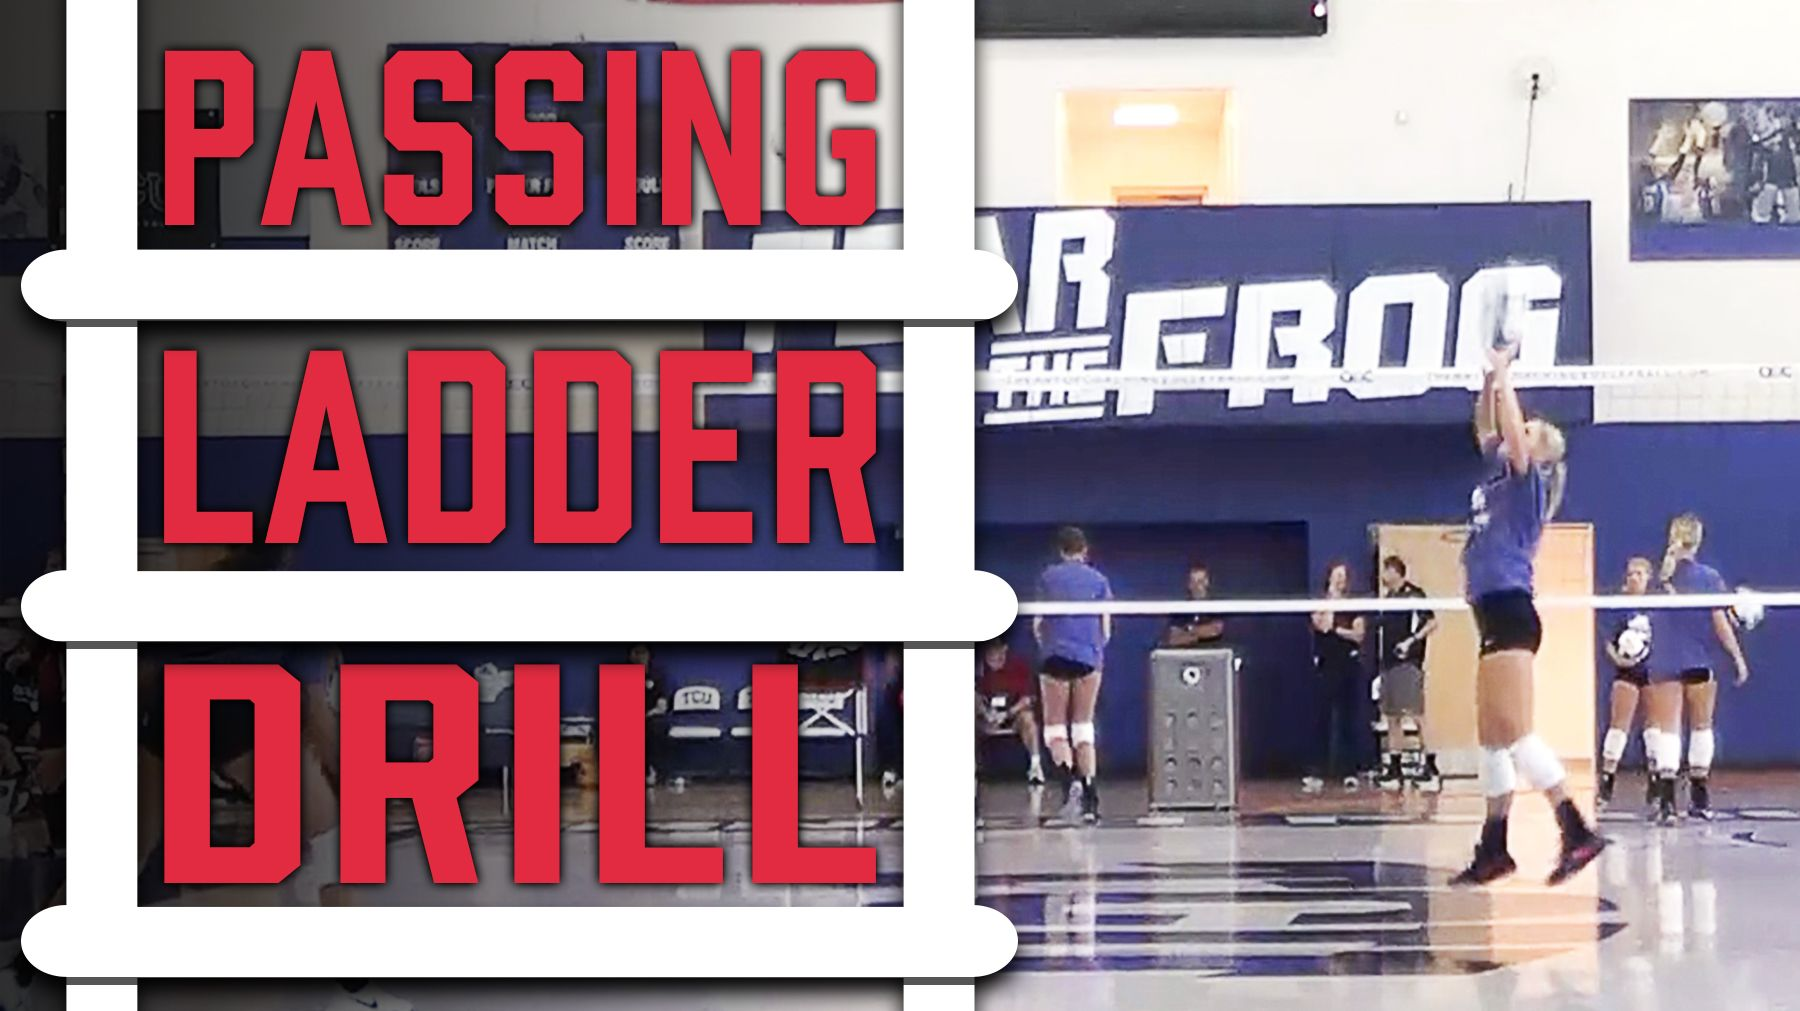 Passing Ladder Drill With Christy Johnson Coaching Volleyball Volleyball Equipment Volleyball Training